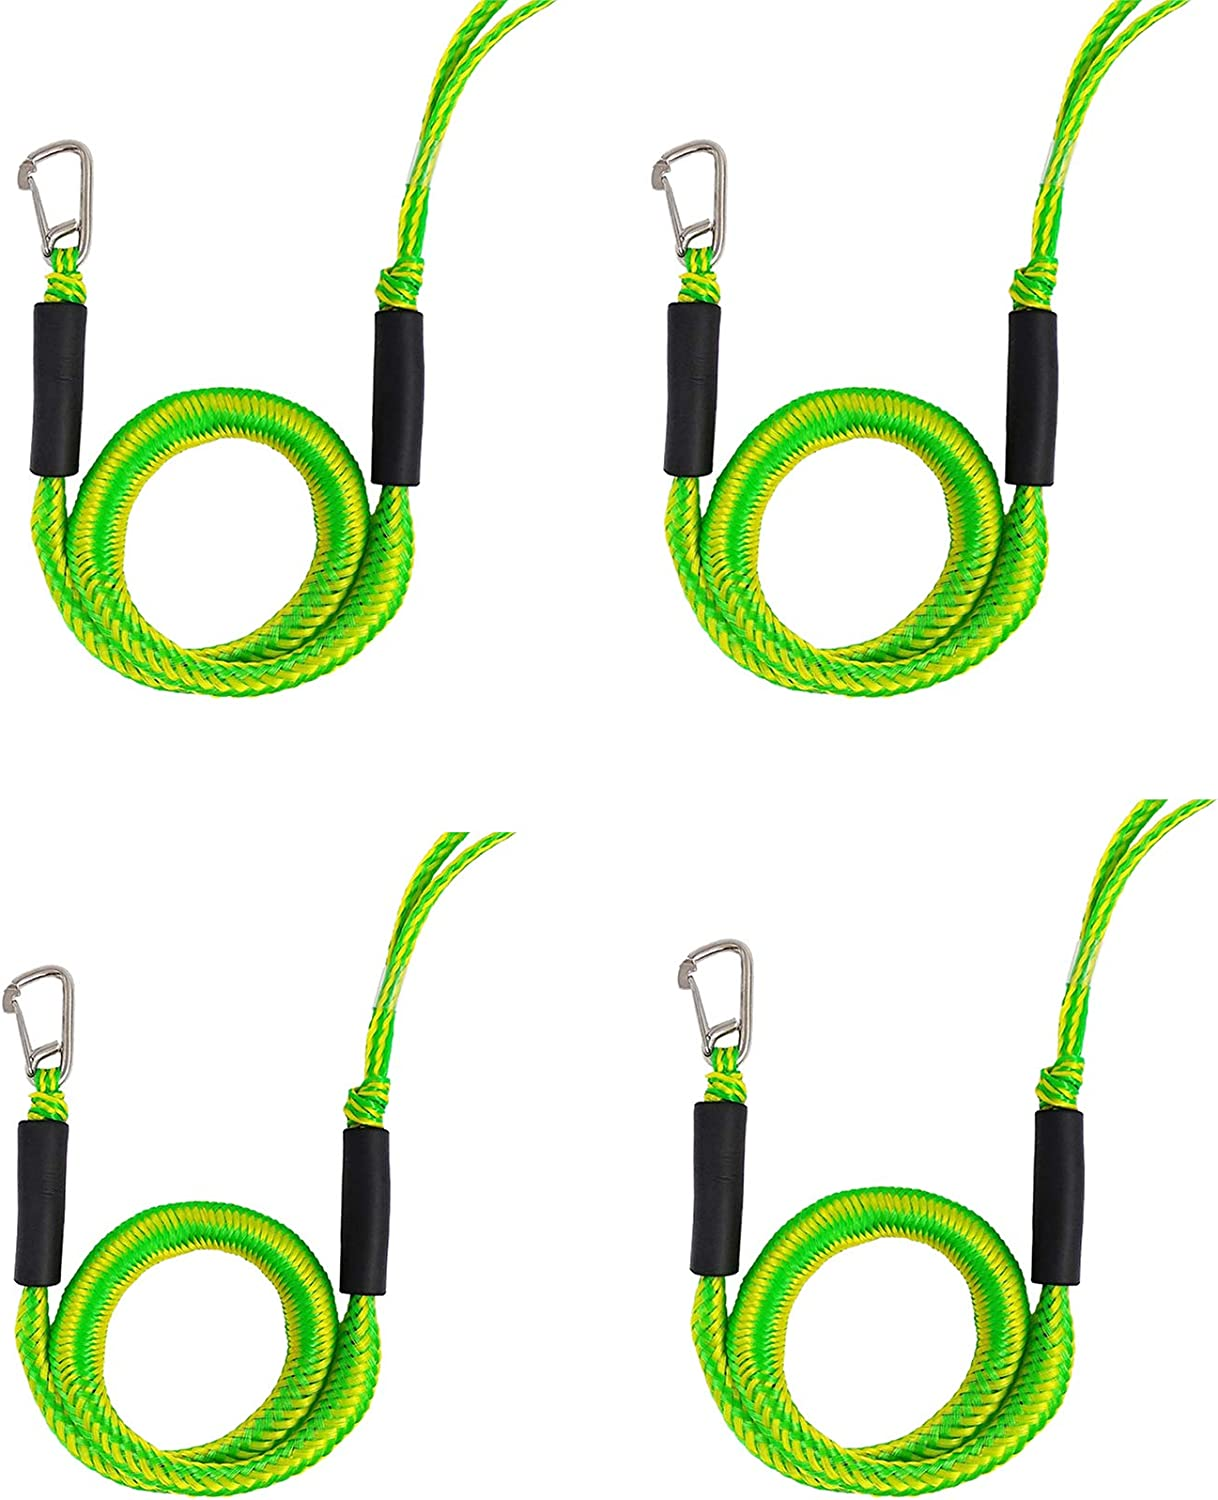 Bungee Dock Lines with Hook Shock Feet Do supreme Cords favorite 4